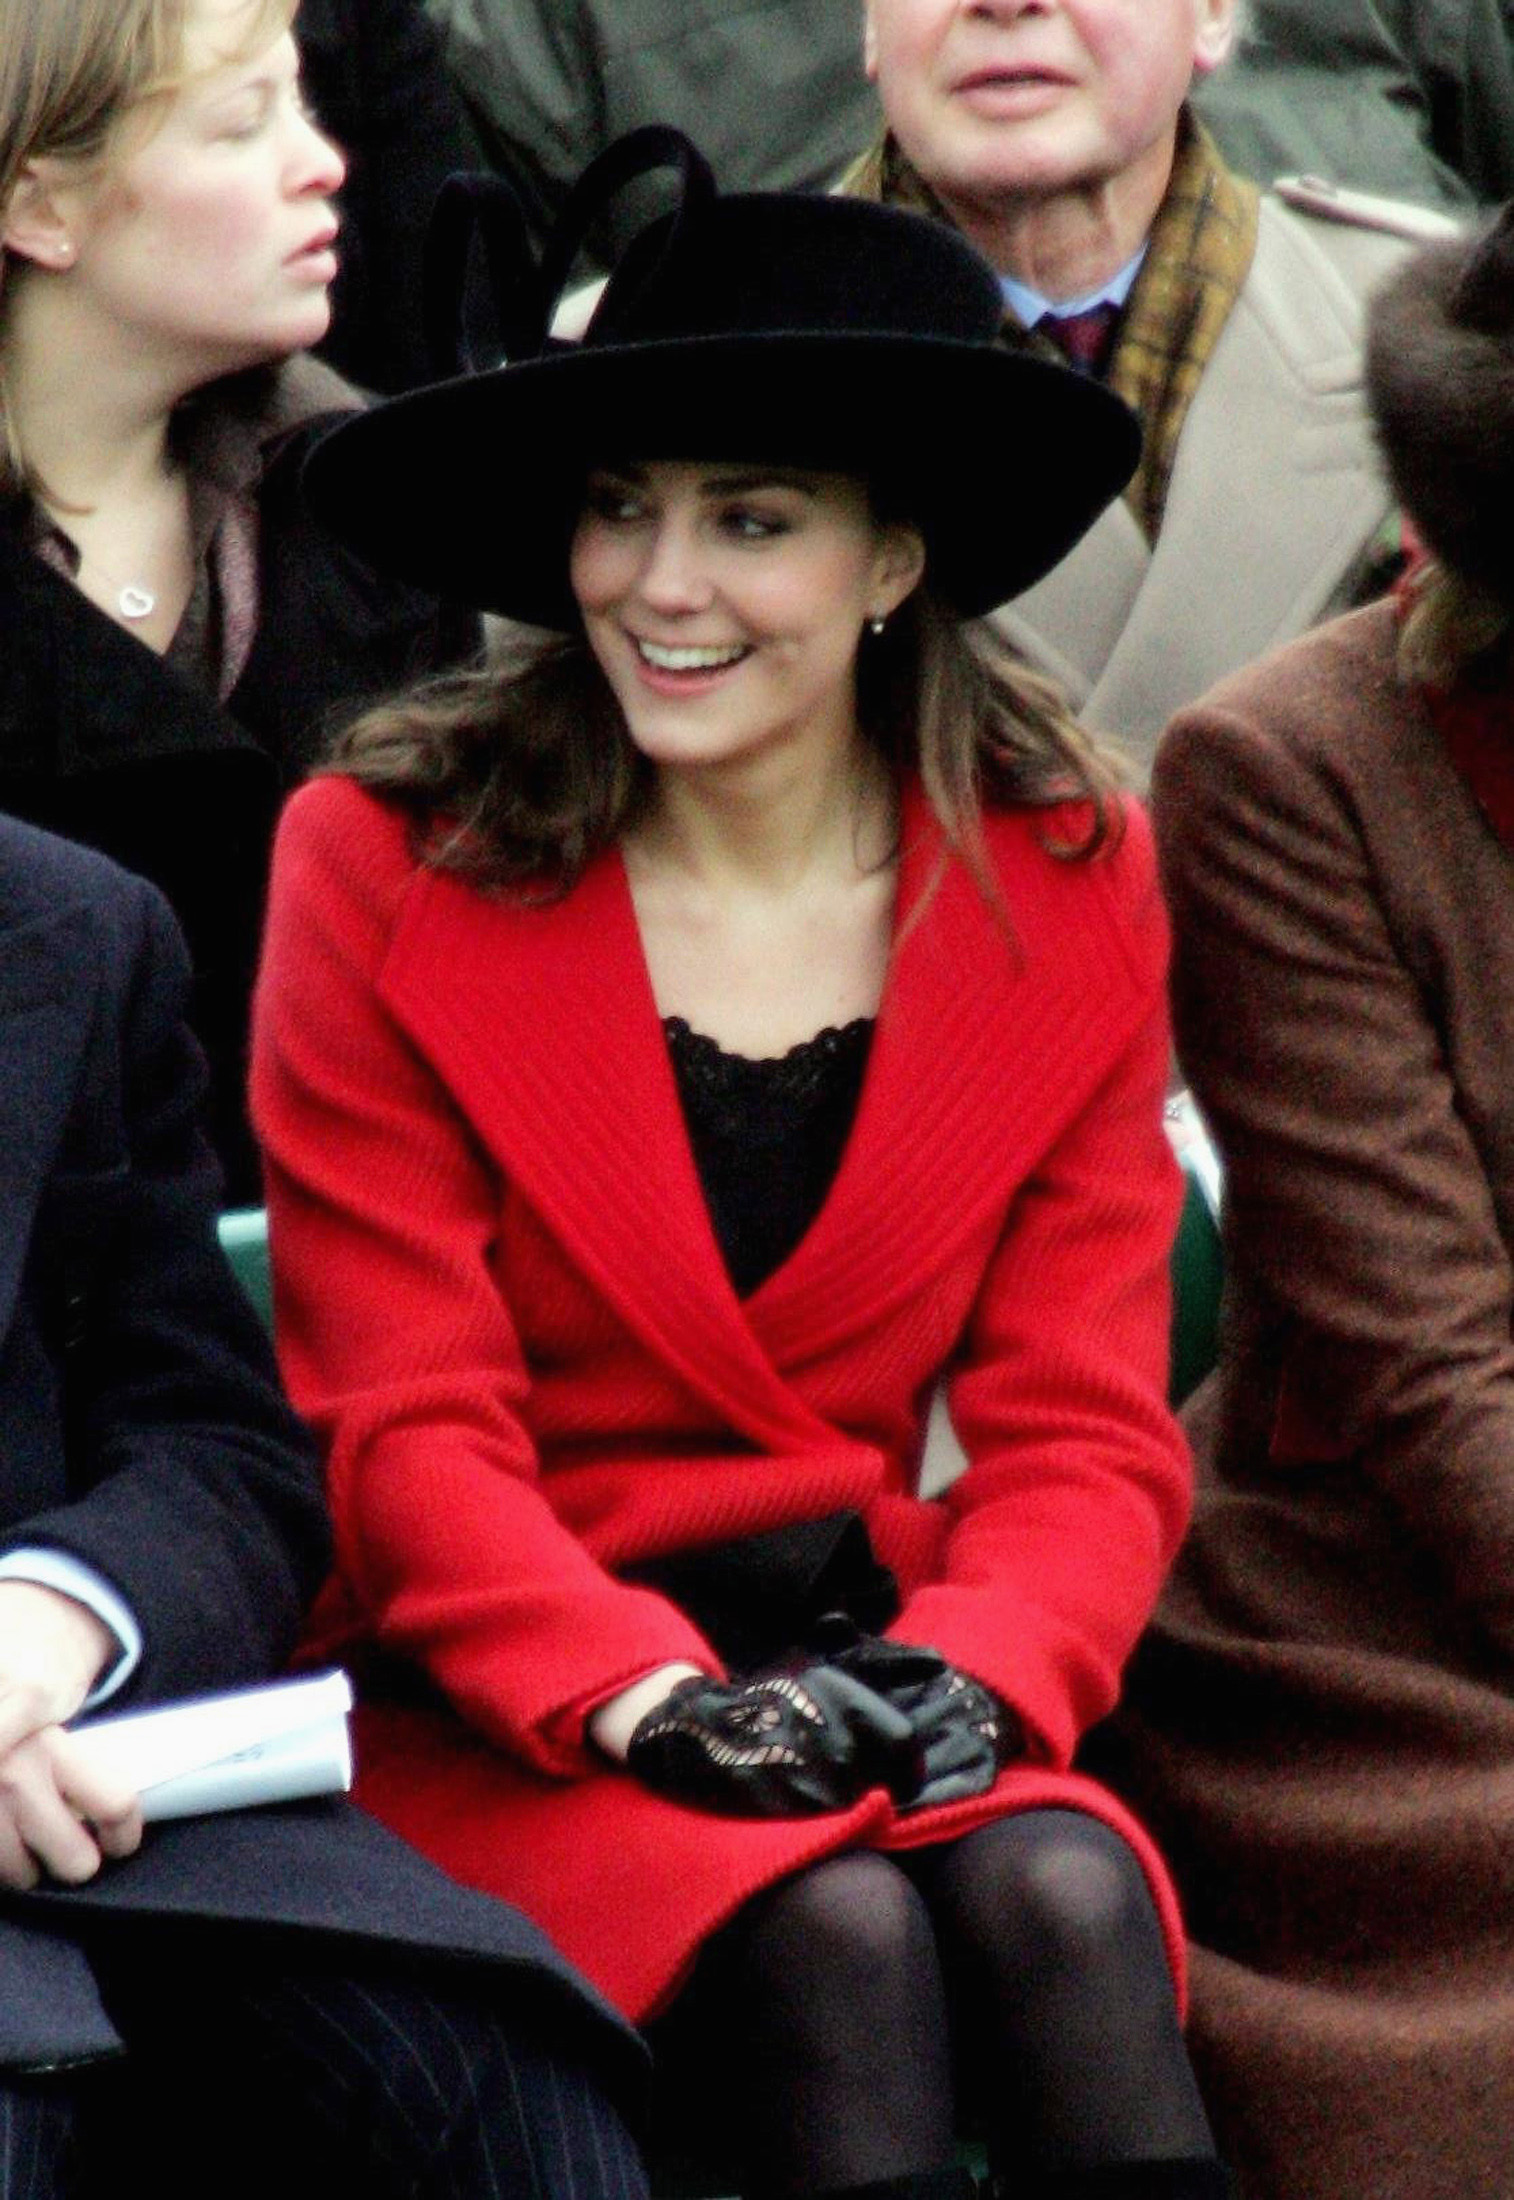 <strong>Regal in Red</strong>                                   Middleton attended Prince William's graduation ceremony from the Royal Military Academy on Dec. 15, 2006, in a red and black ensemble.